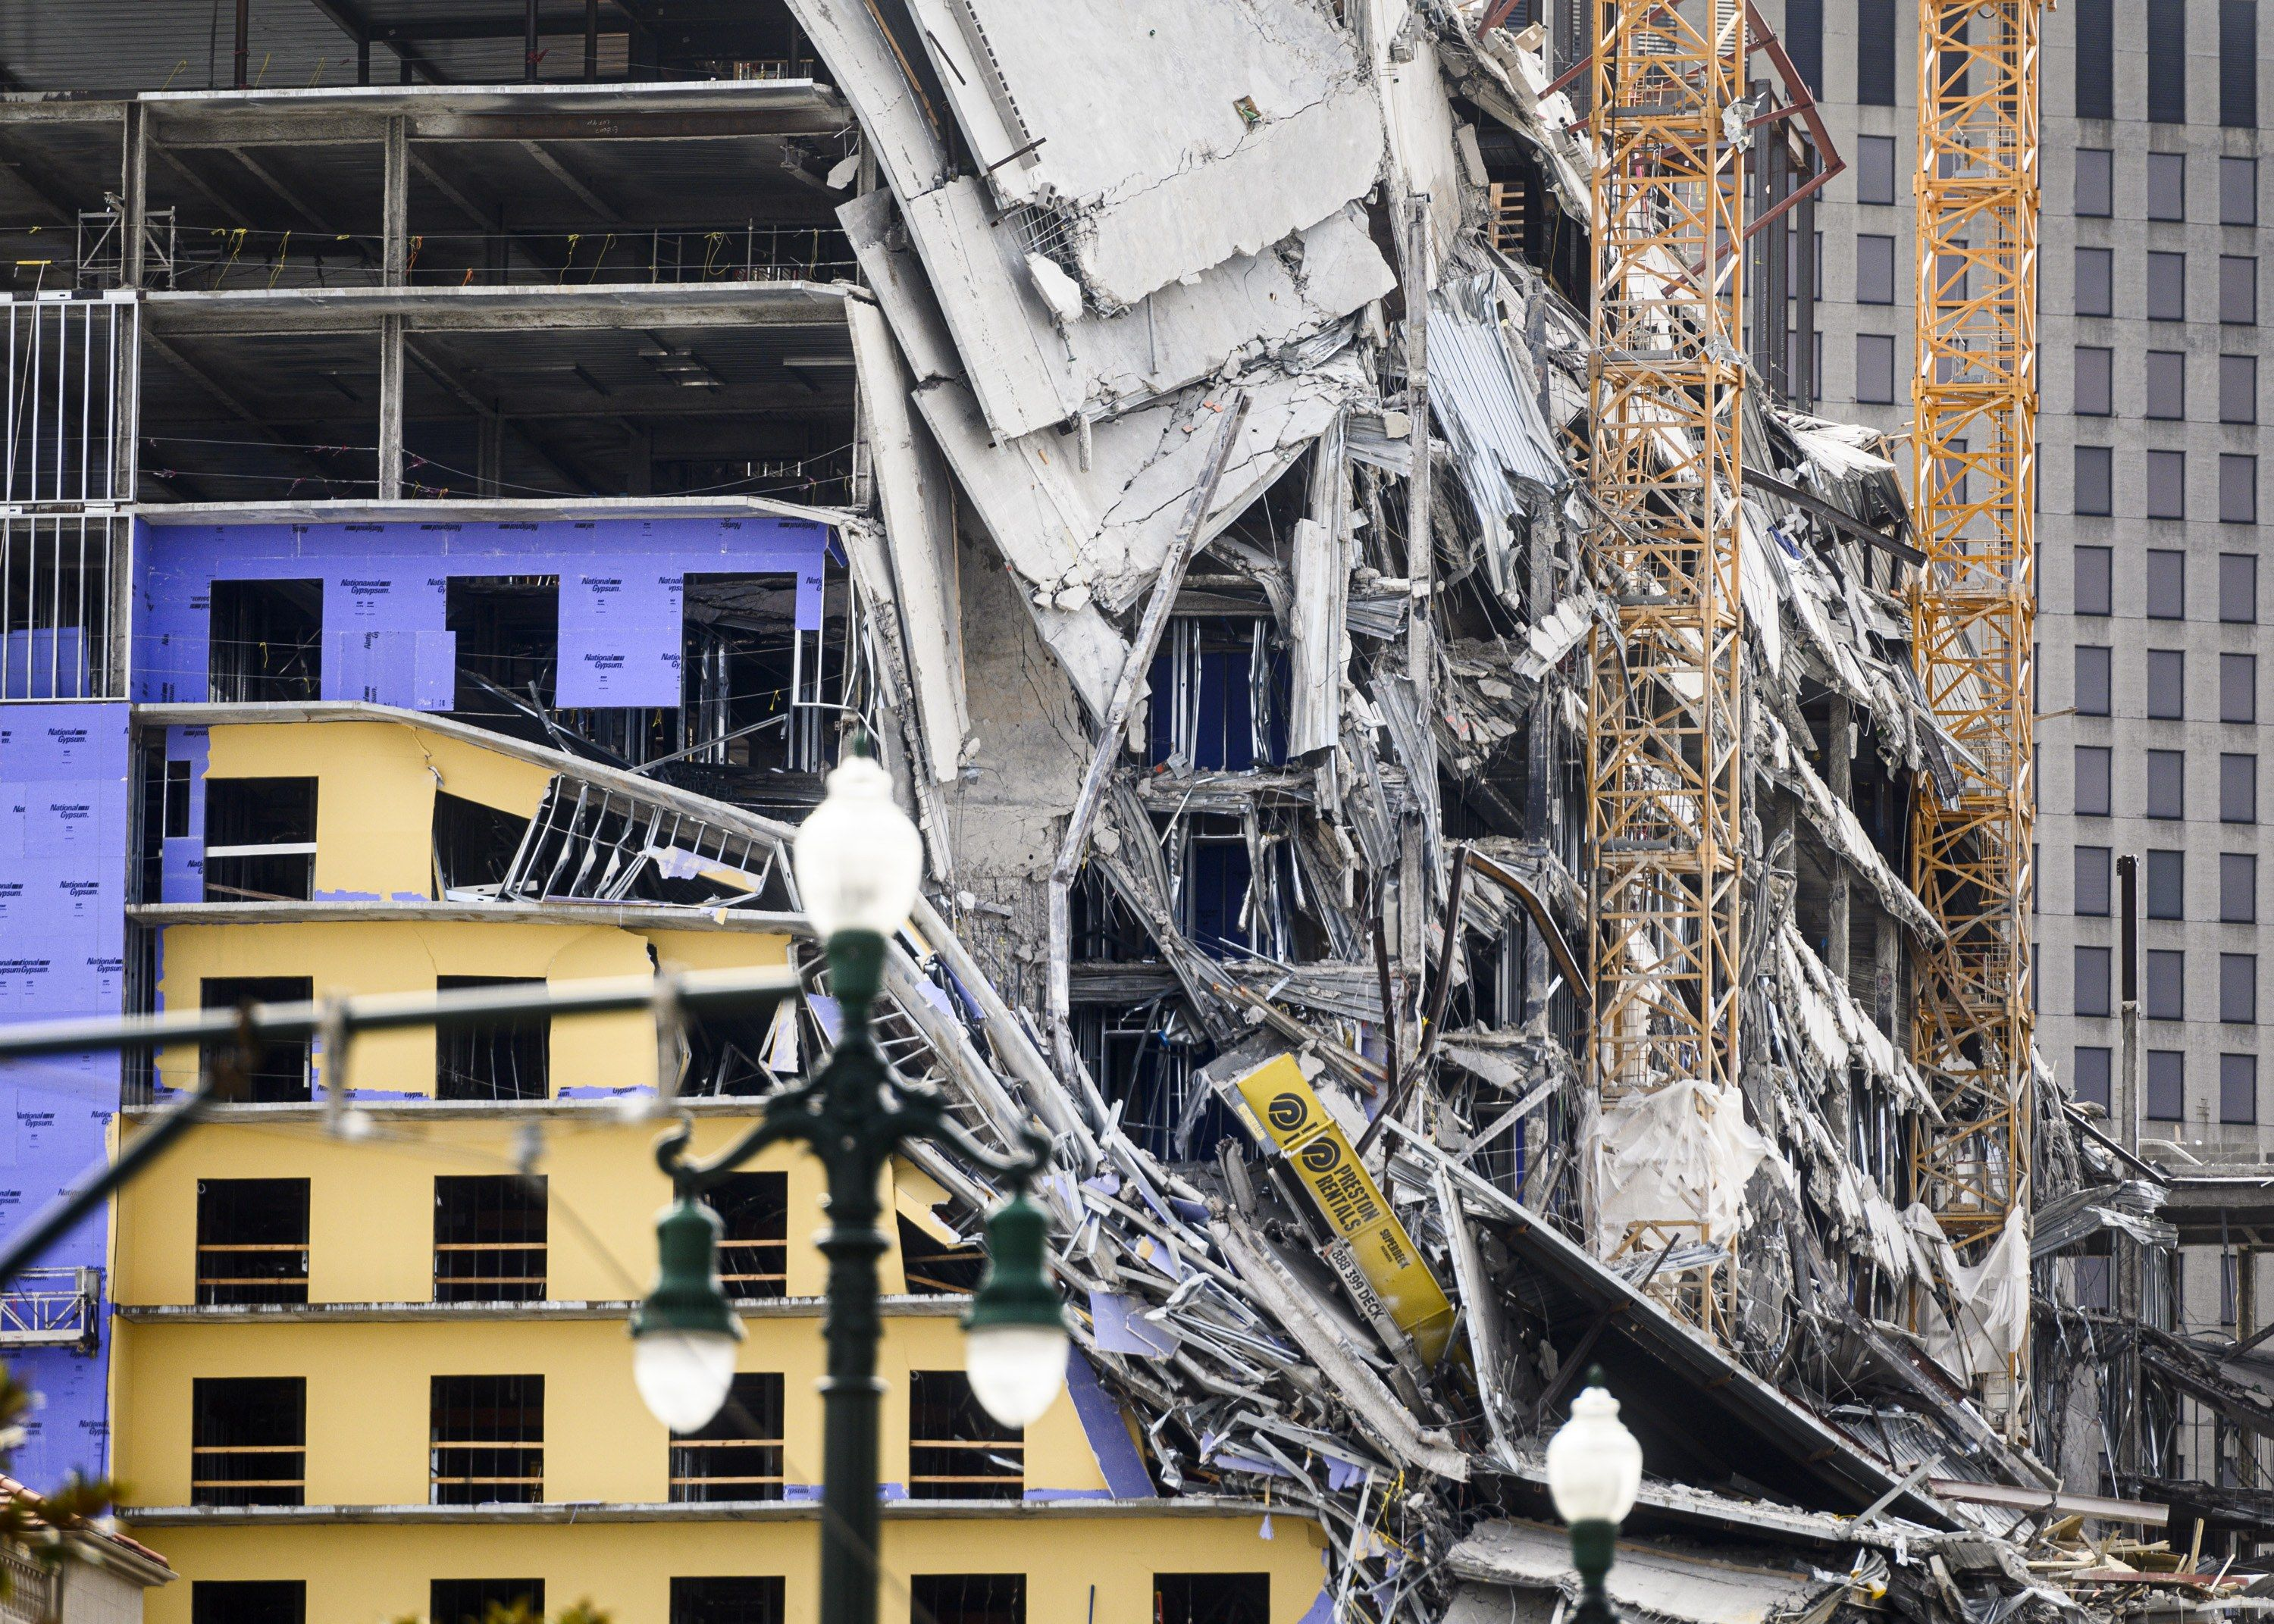 The Hard Rock Hotel Collapse In Downtown New Orleans Has Resulted